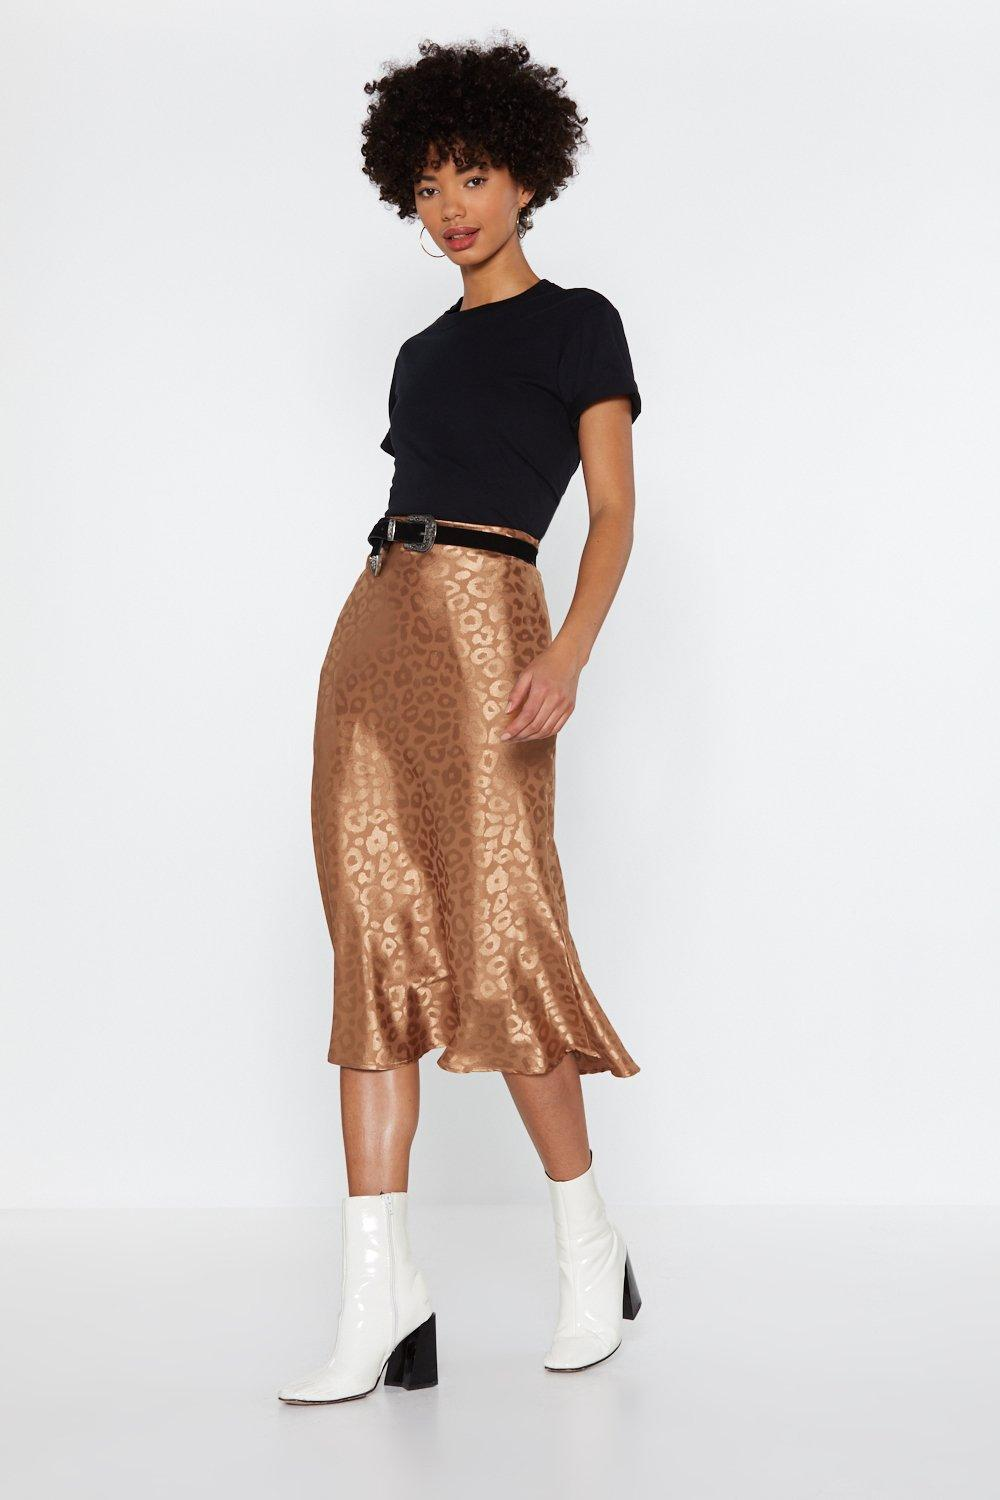 bde68f5e41 Learn the Leopard Way Satin Midi Skirt | Shop Clothes at Nasty Gal!